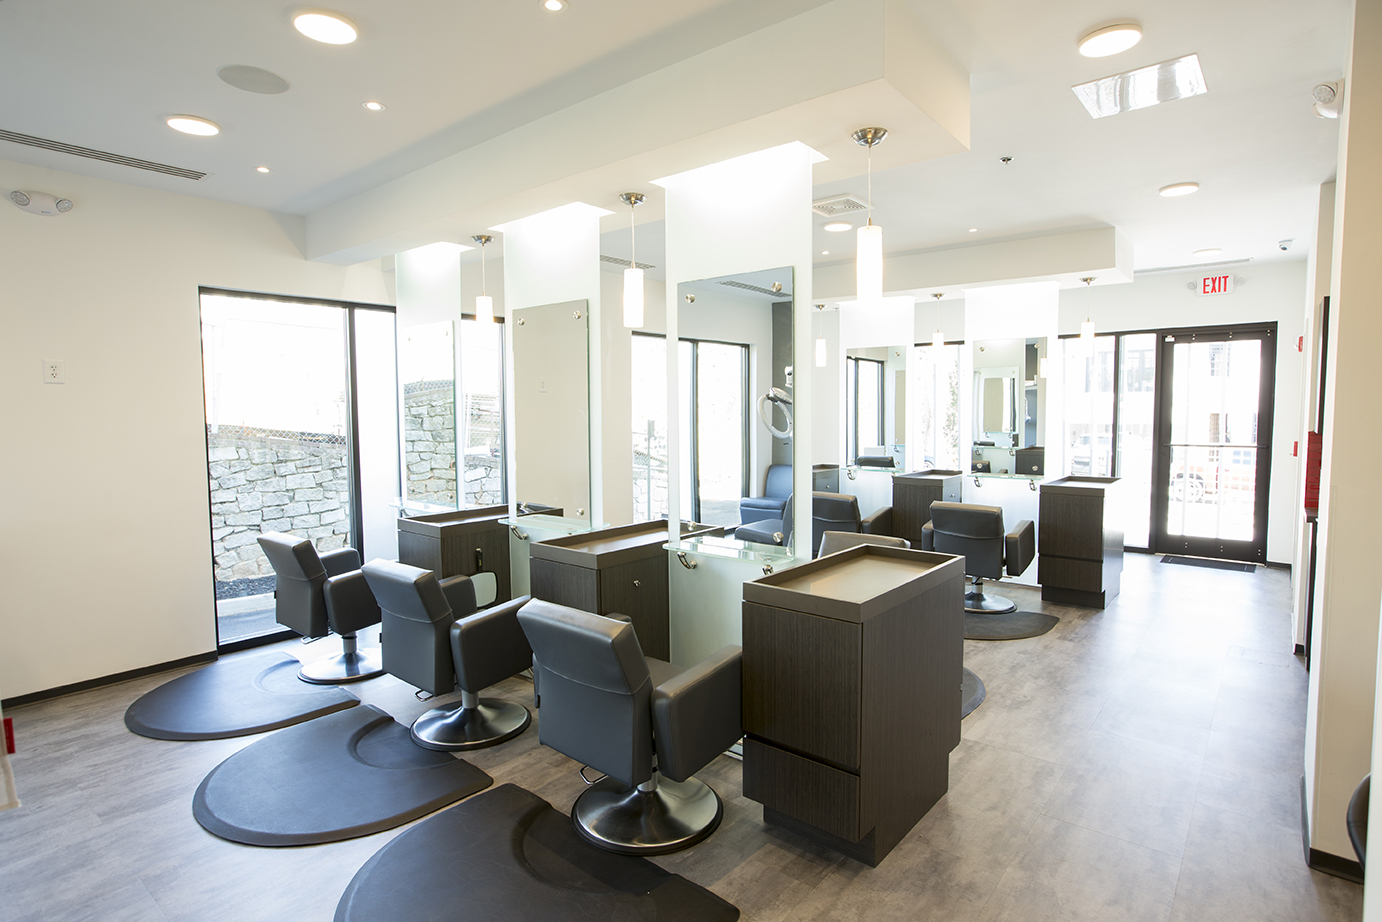 Inside barrons london salon